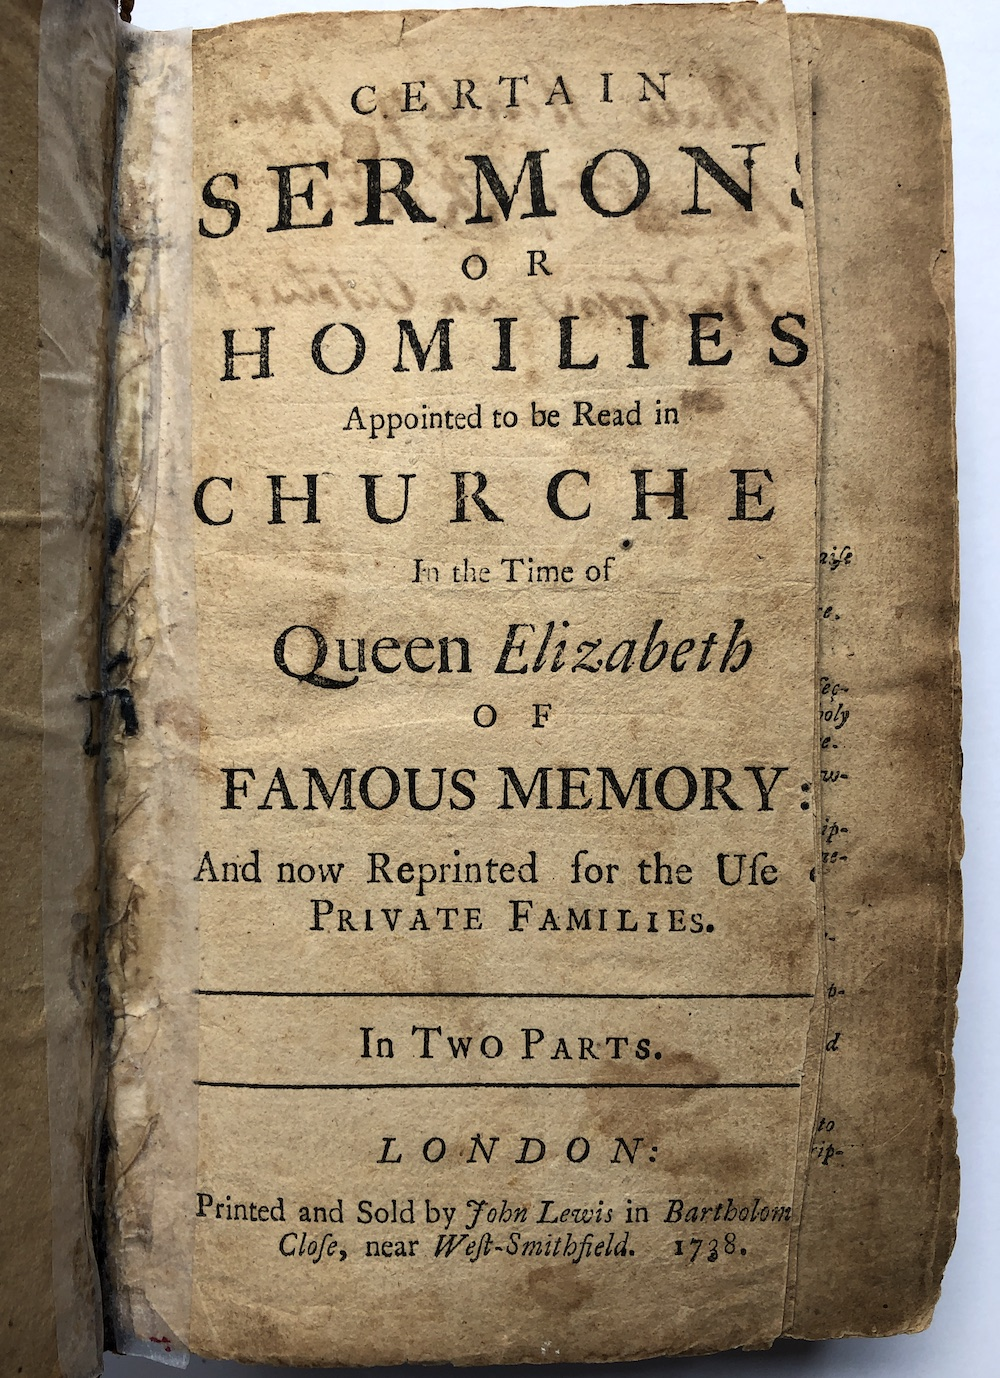 Certain Sermons or Homilies appointed to be read in churches in the time of  the late Queen Elizabeth of Famous Memory, and now reprinted for the use